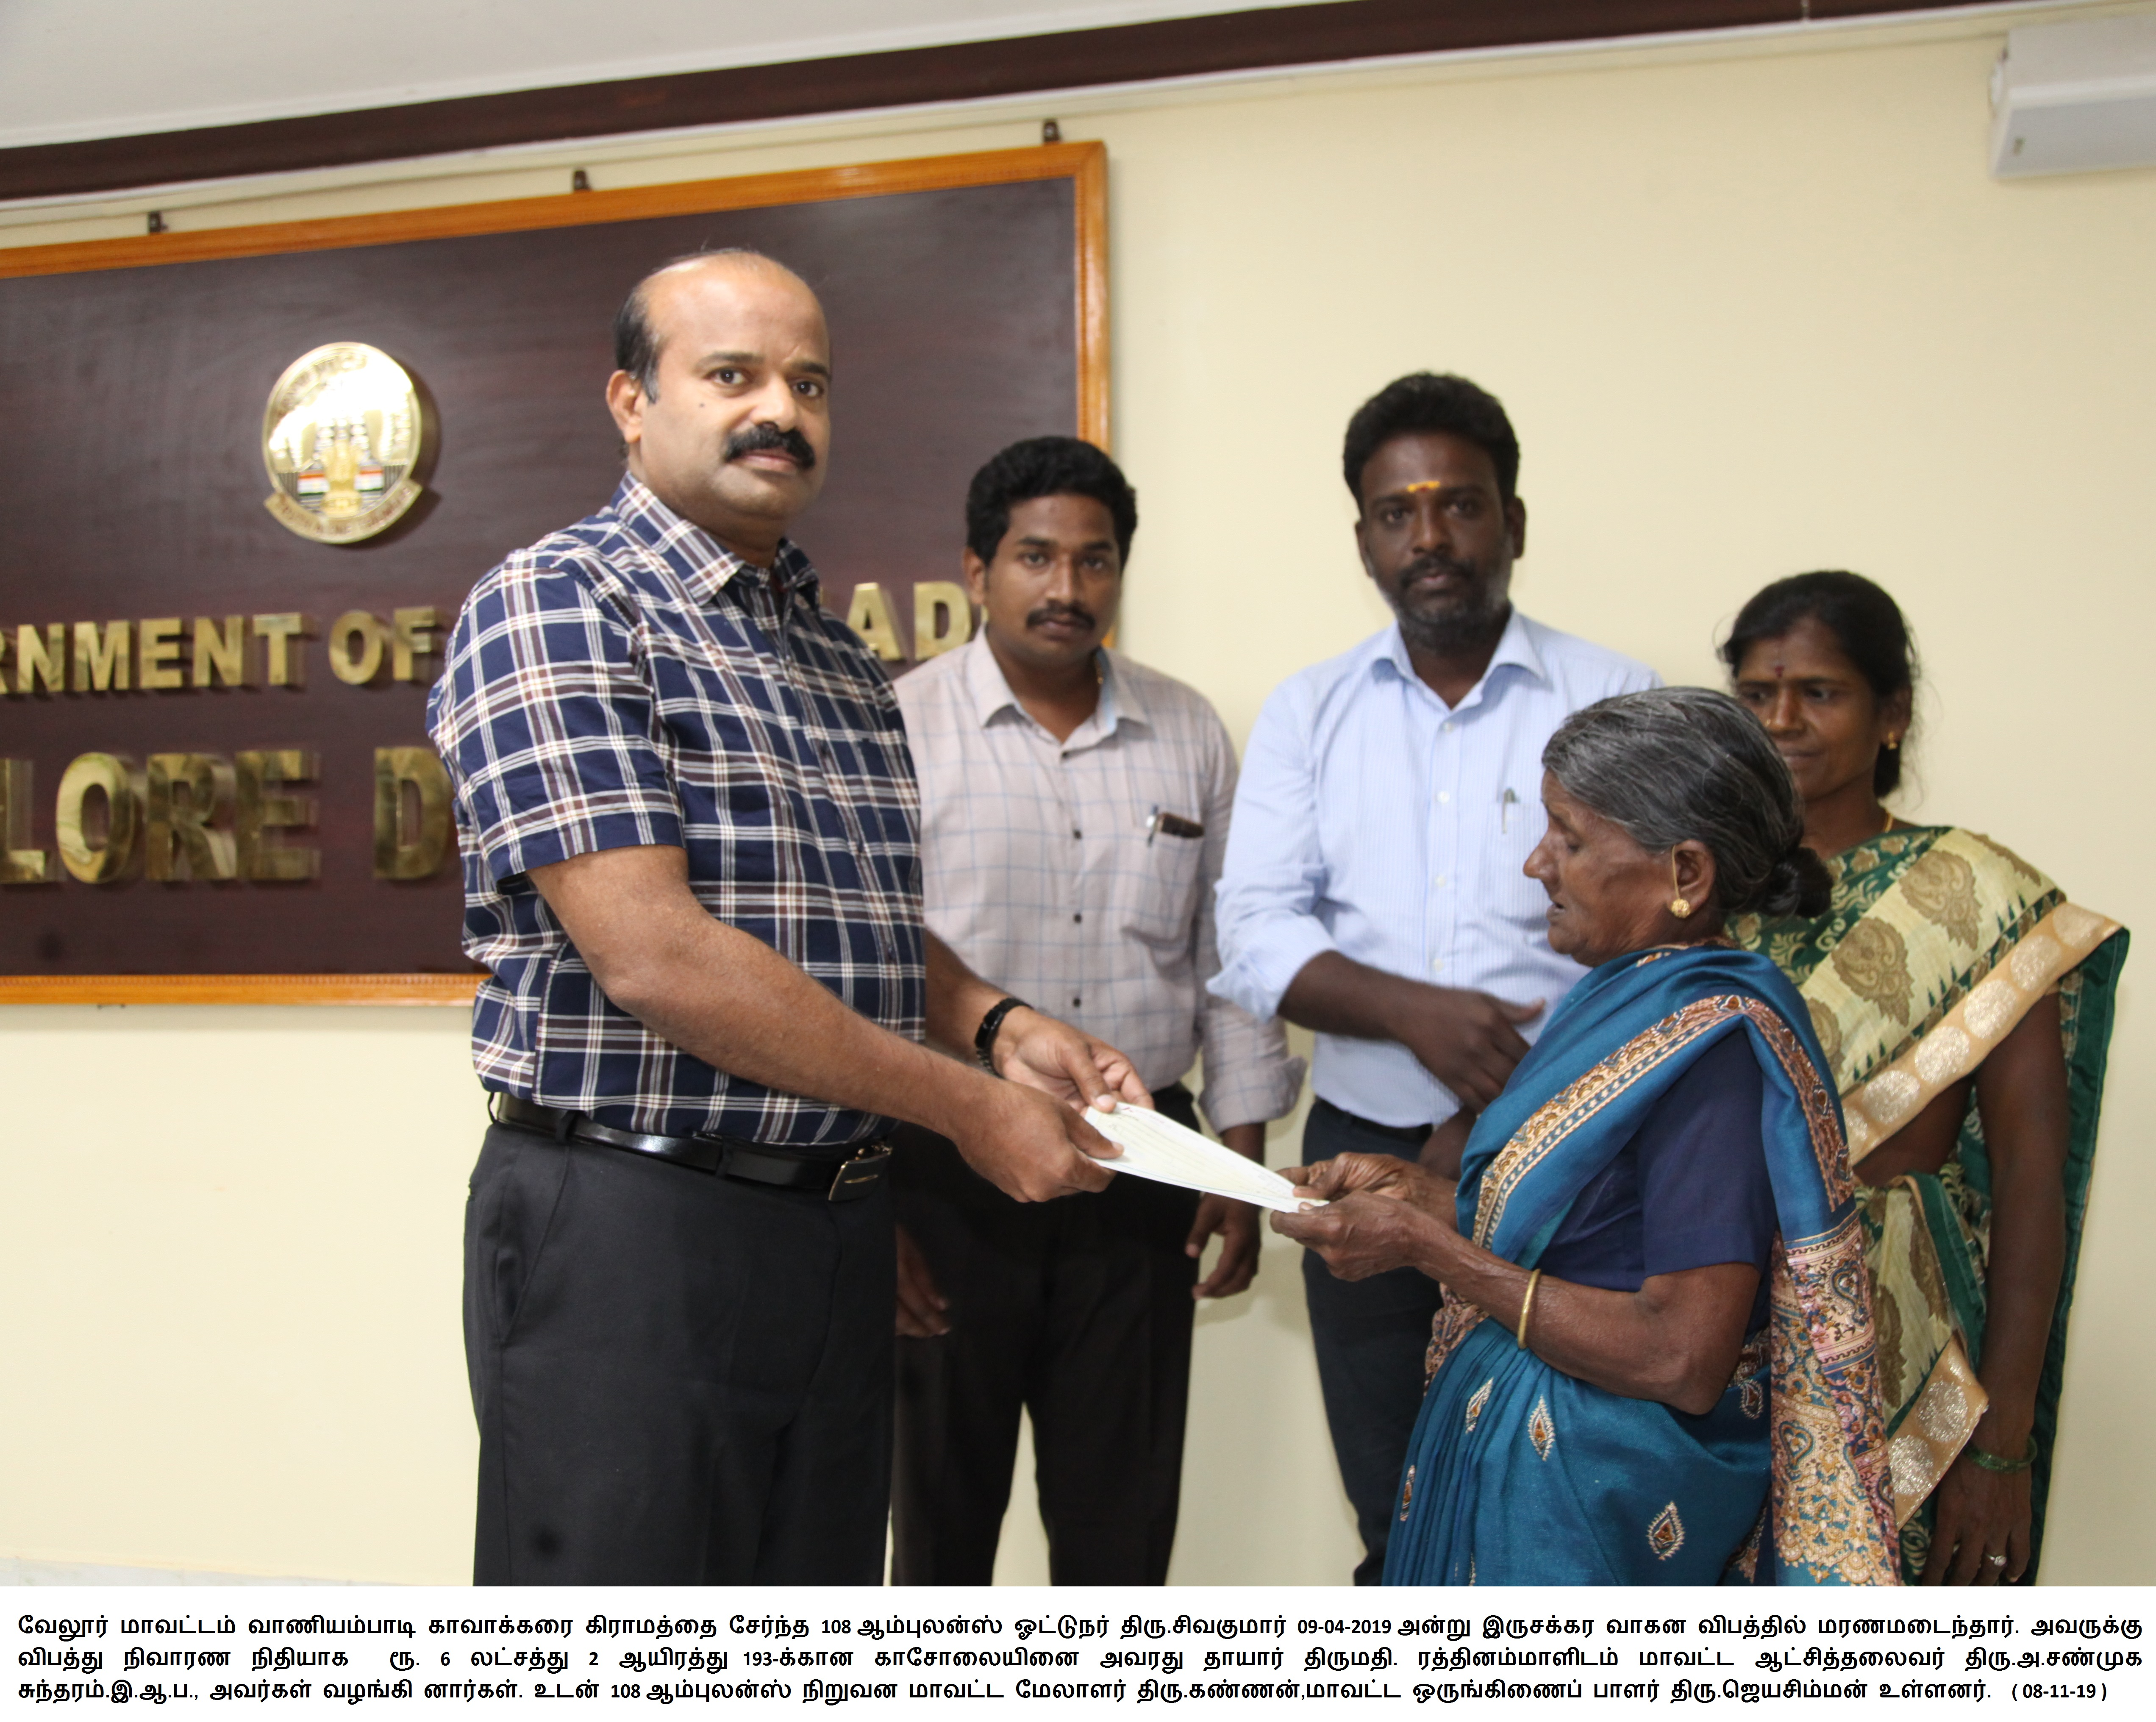 Relief fund for the family of 108 ambulance drivers who died in the accident 08/11/2019